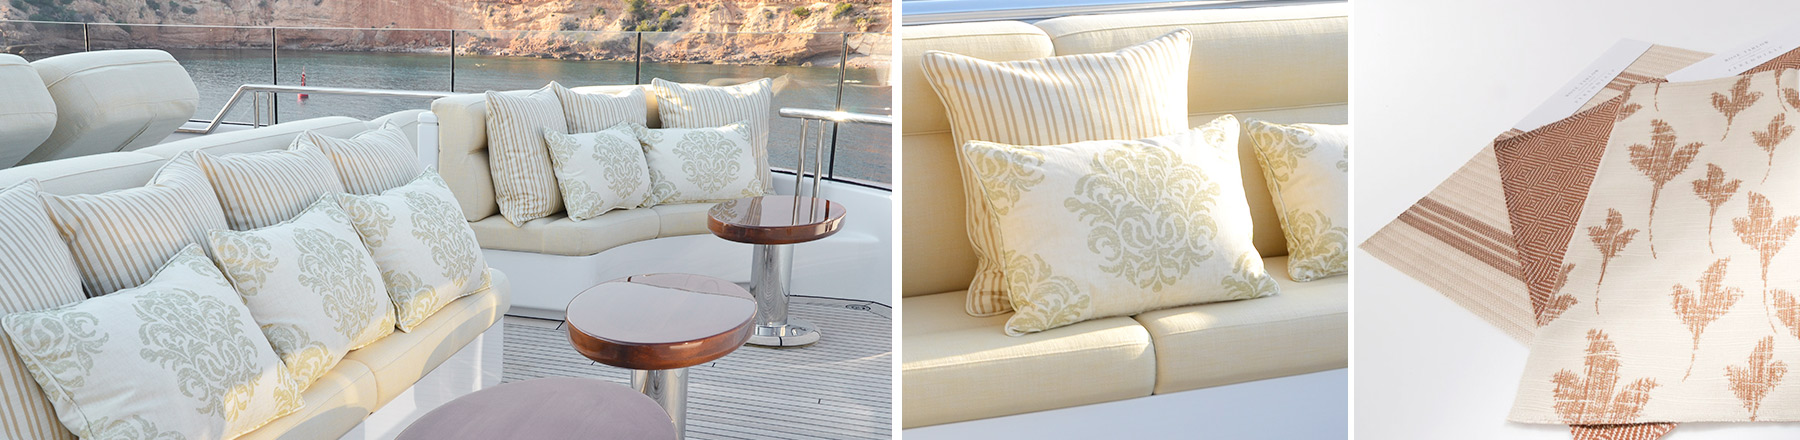 Claus_Bruns_Yacht_Dekortionskissen_Exterior_Design_Luxusyacht_sundeck_ indoors_outdoors